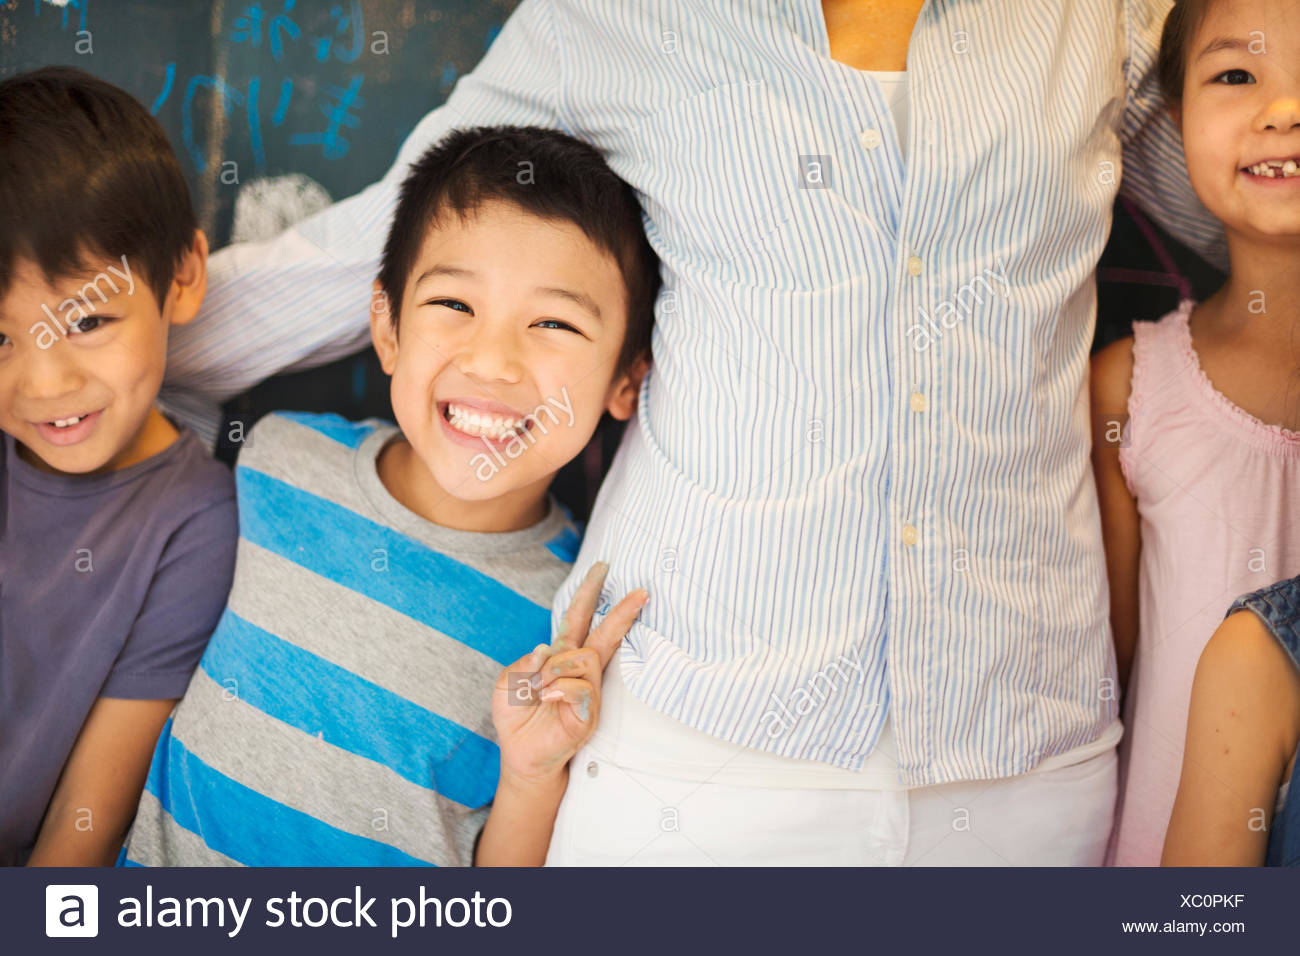 A group of children in school with their teacher. Stock Photo